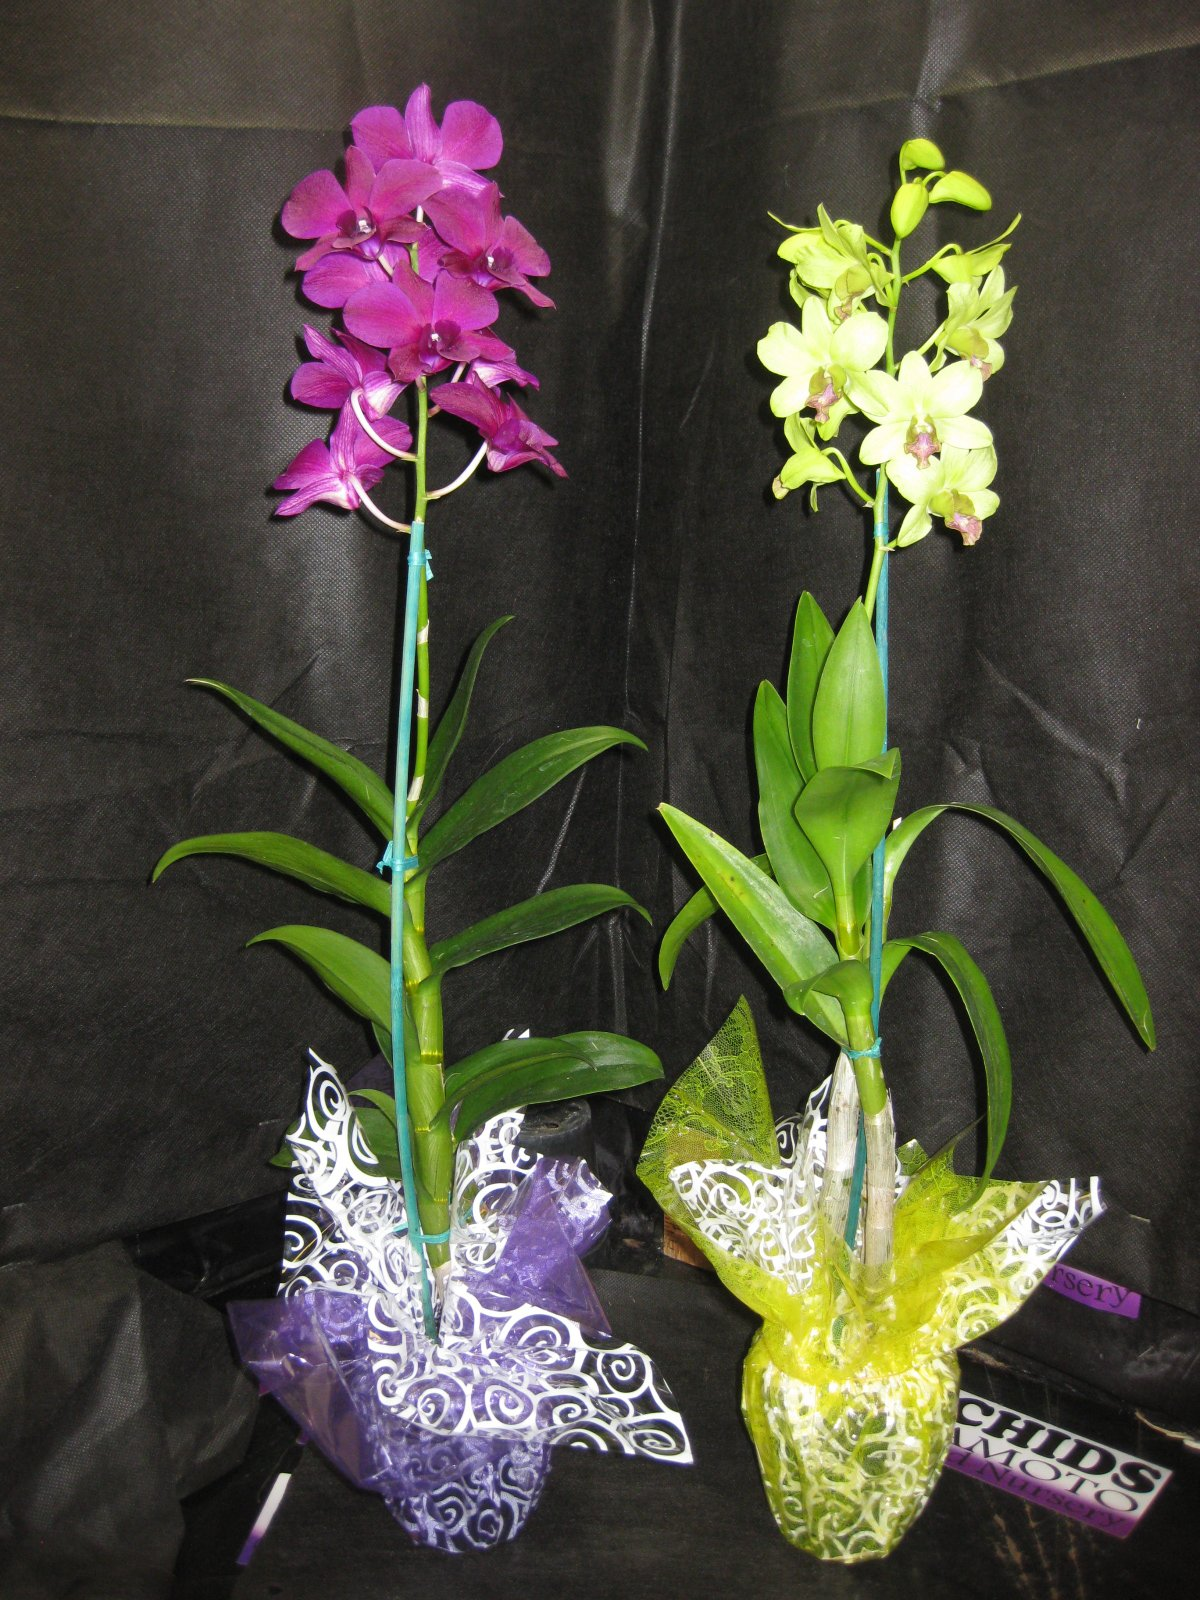 2 Blooming/Budded Flowering Dendrobium Orchid Plant-A GIFT OF ALOHA! BEAUTIFUL- Perfect Gift for any occasion